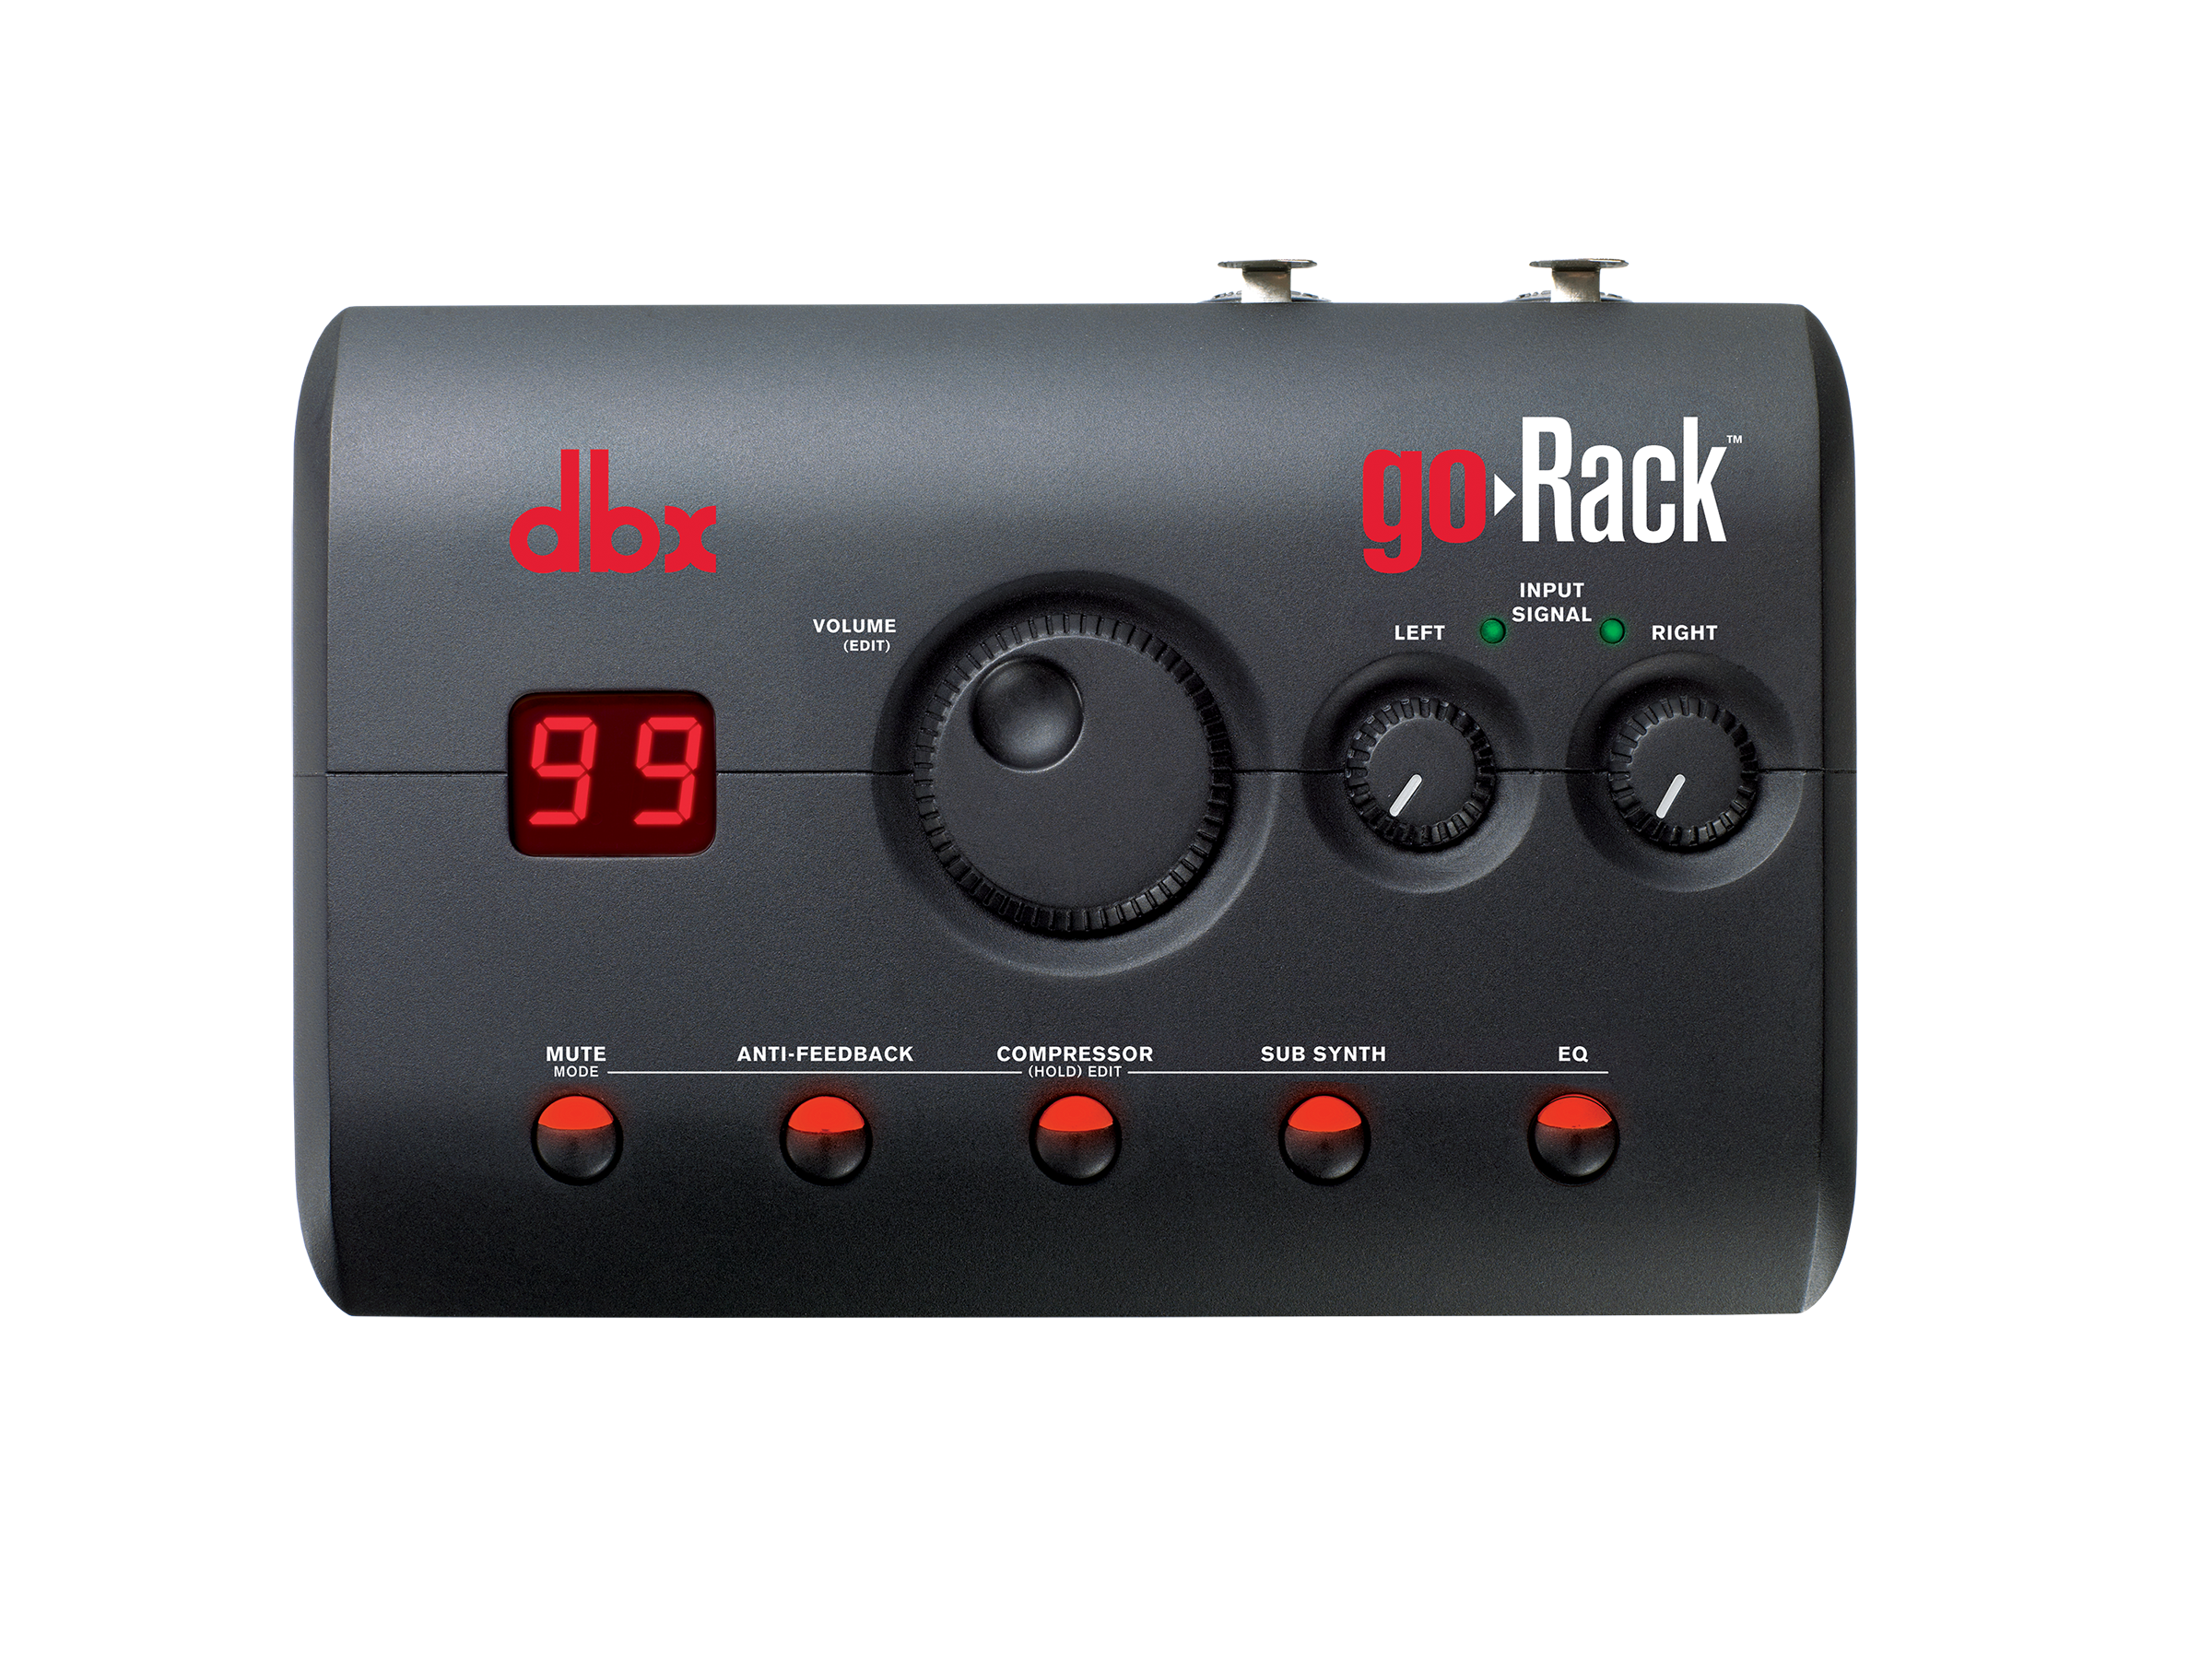 Gorack Dbx Professional Audio Wiring Diagram Preamp Eq Discontinued